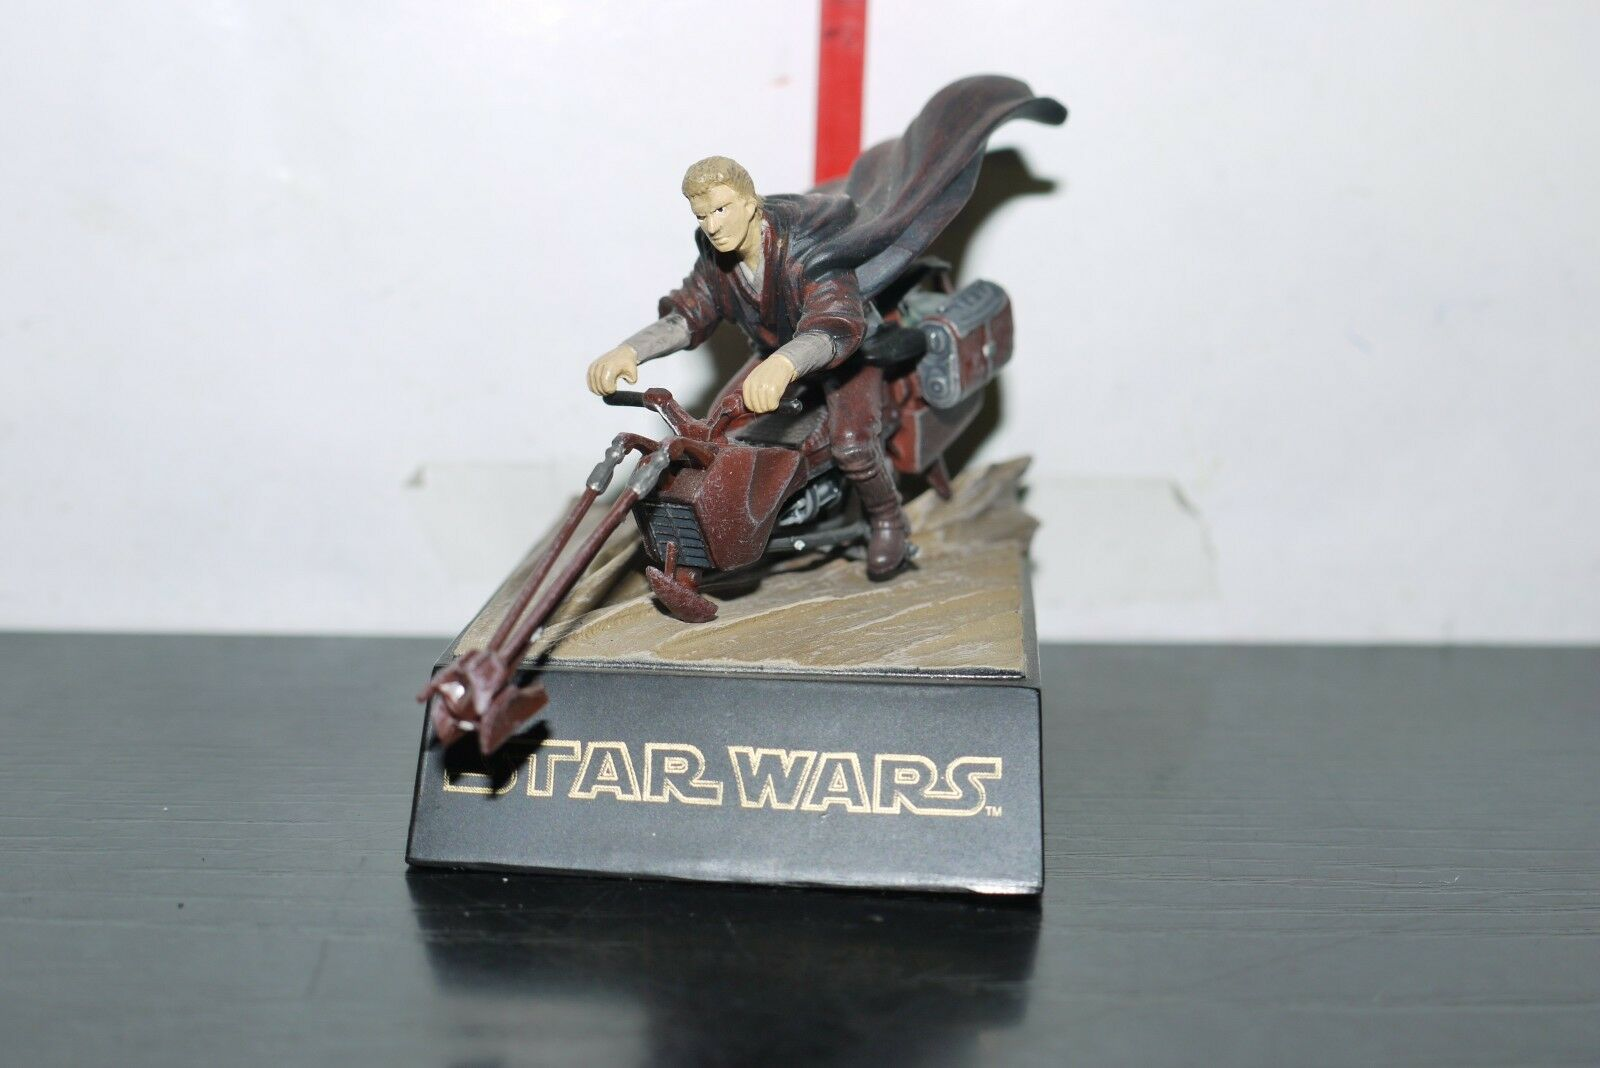 2004 ANAKIN SKYWALKER SPEEDER BIKE MINI FIGURE Diorama Tomy Star Wars